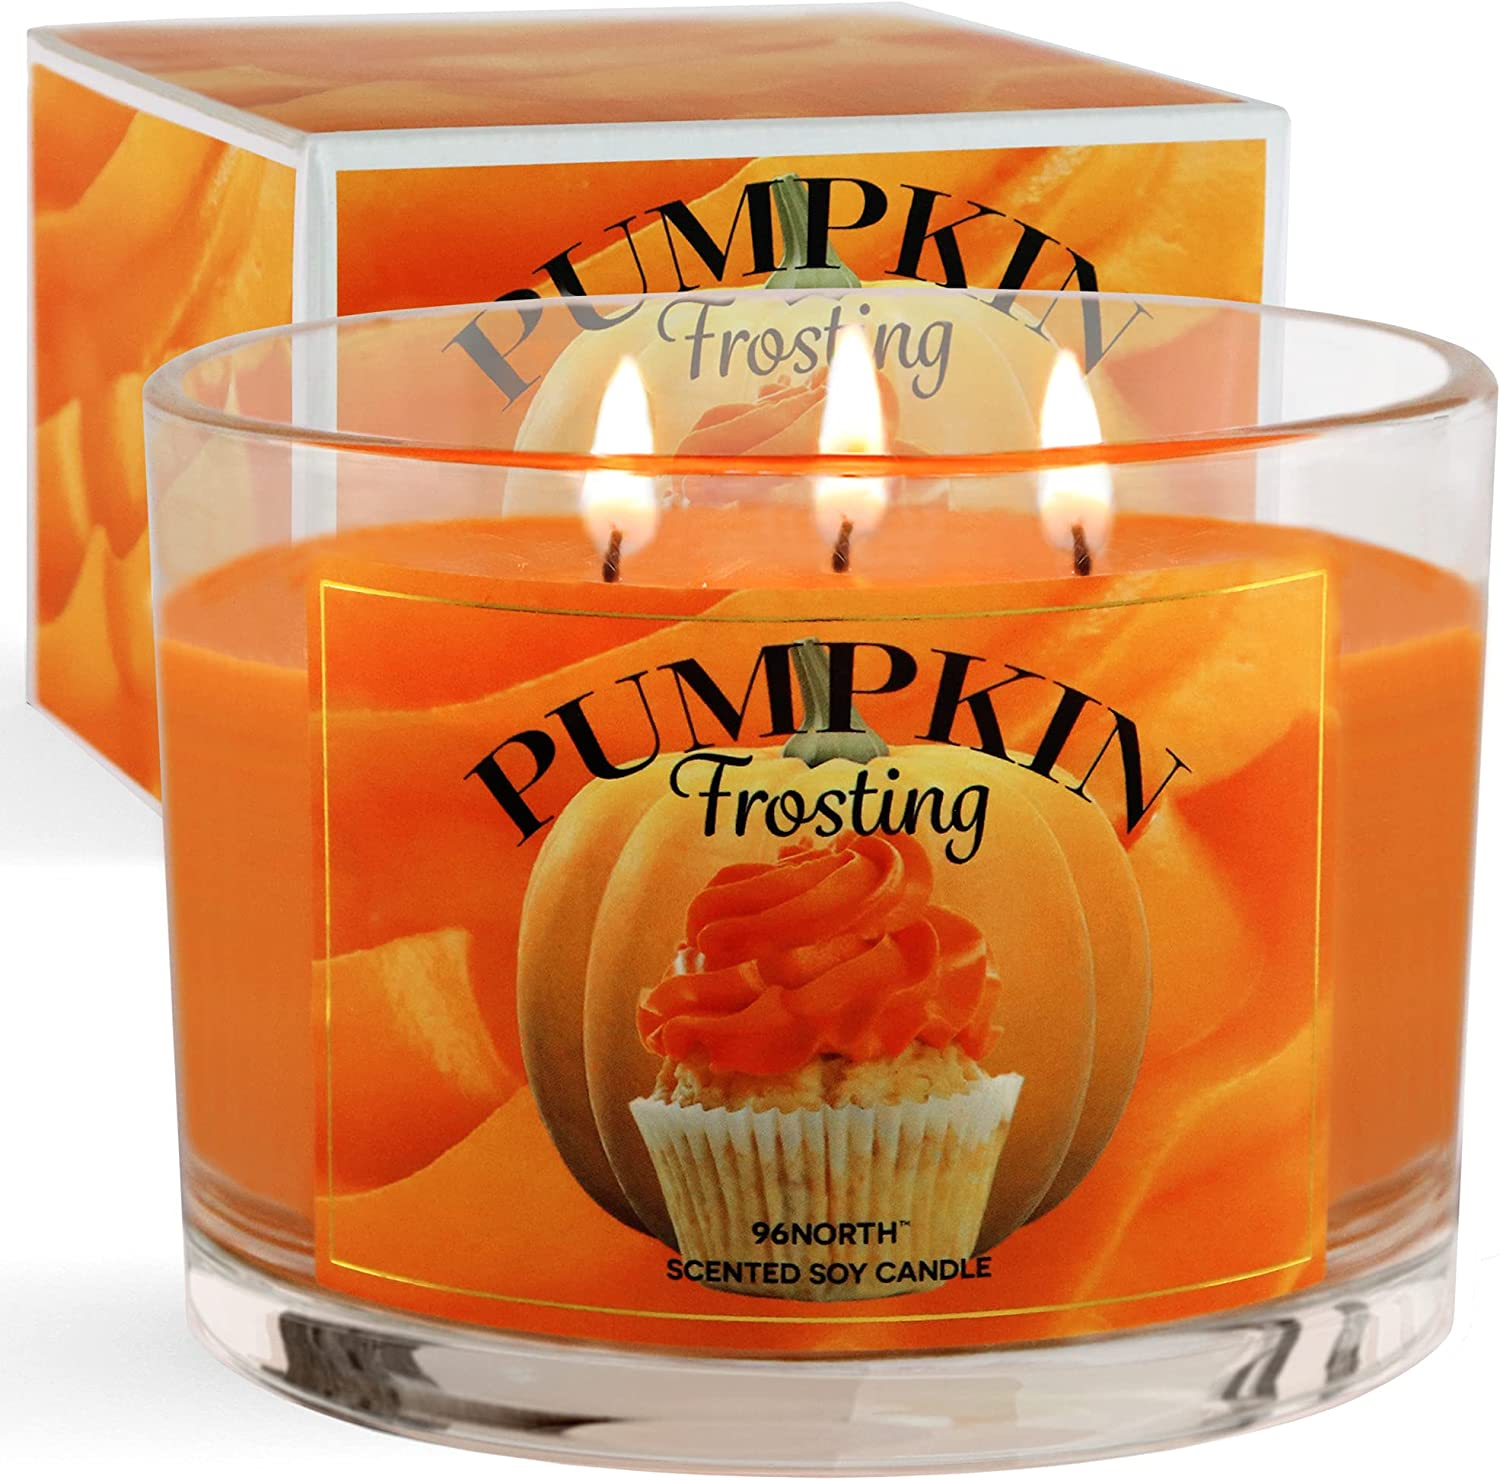 96NORTH Pumpkin Candle   Large 3 Wick   Fall Candles Pumpkin Spice Scented   Halloween Candles Decor   100% Soy Wax